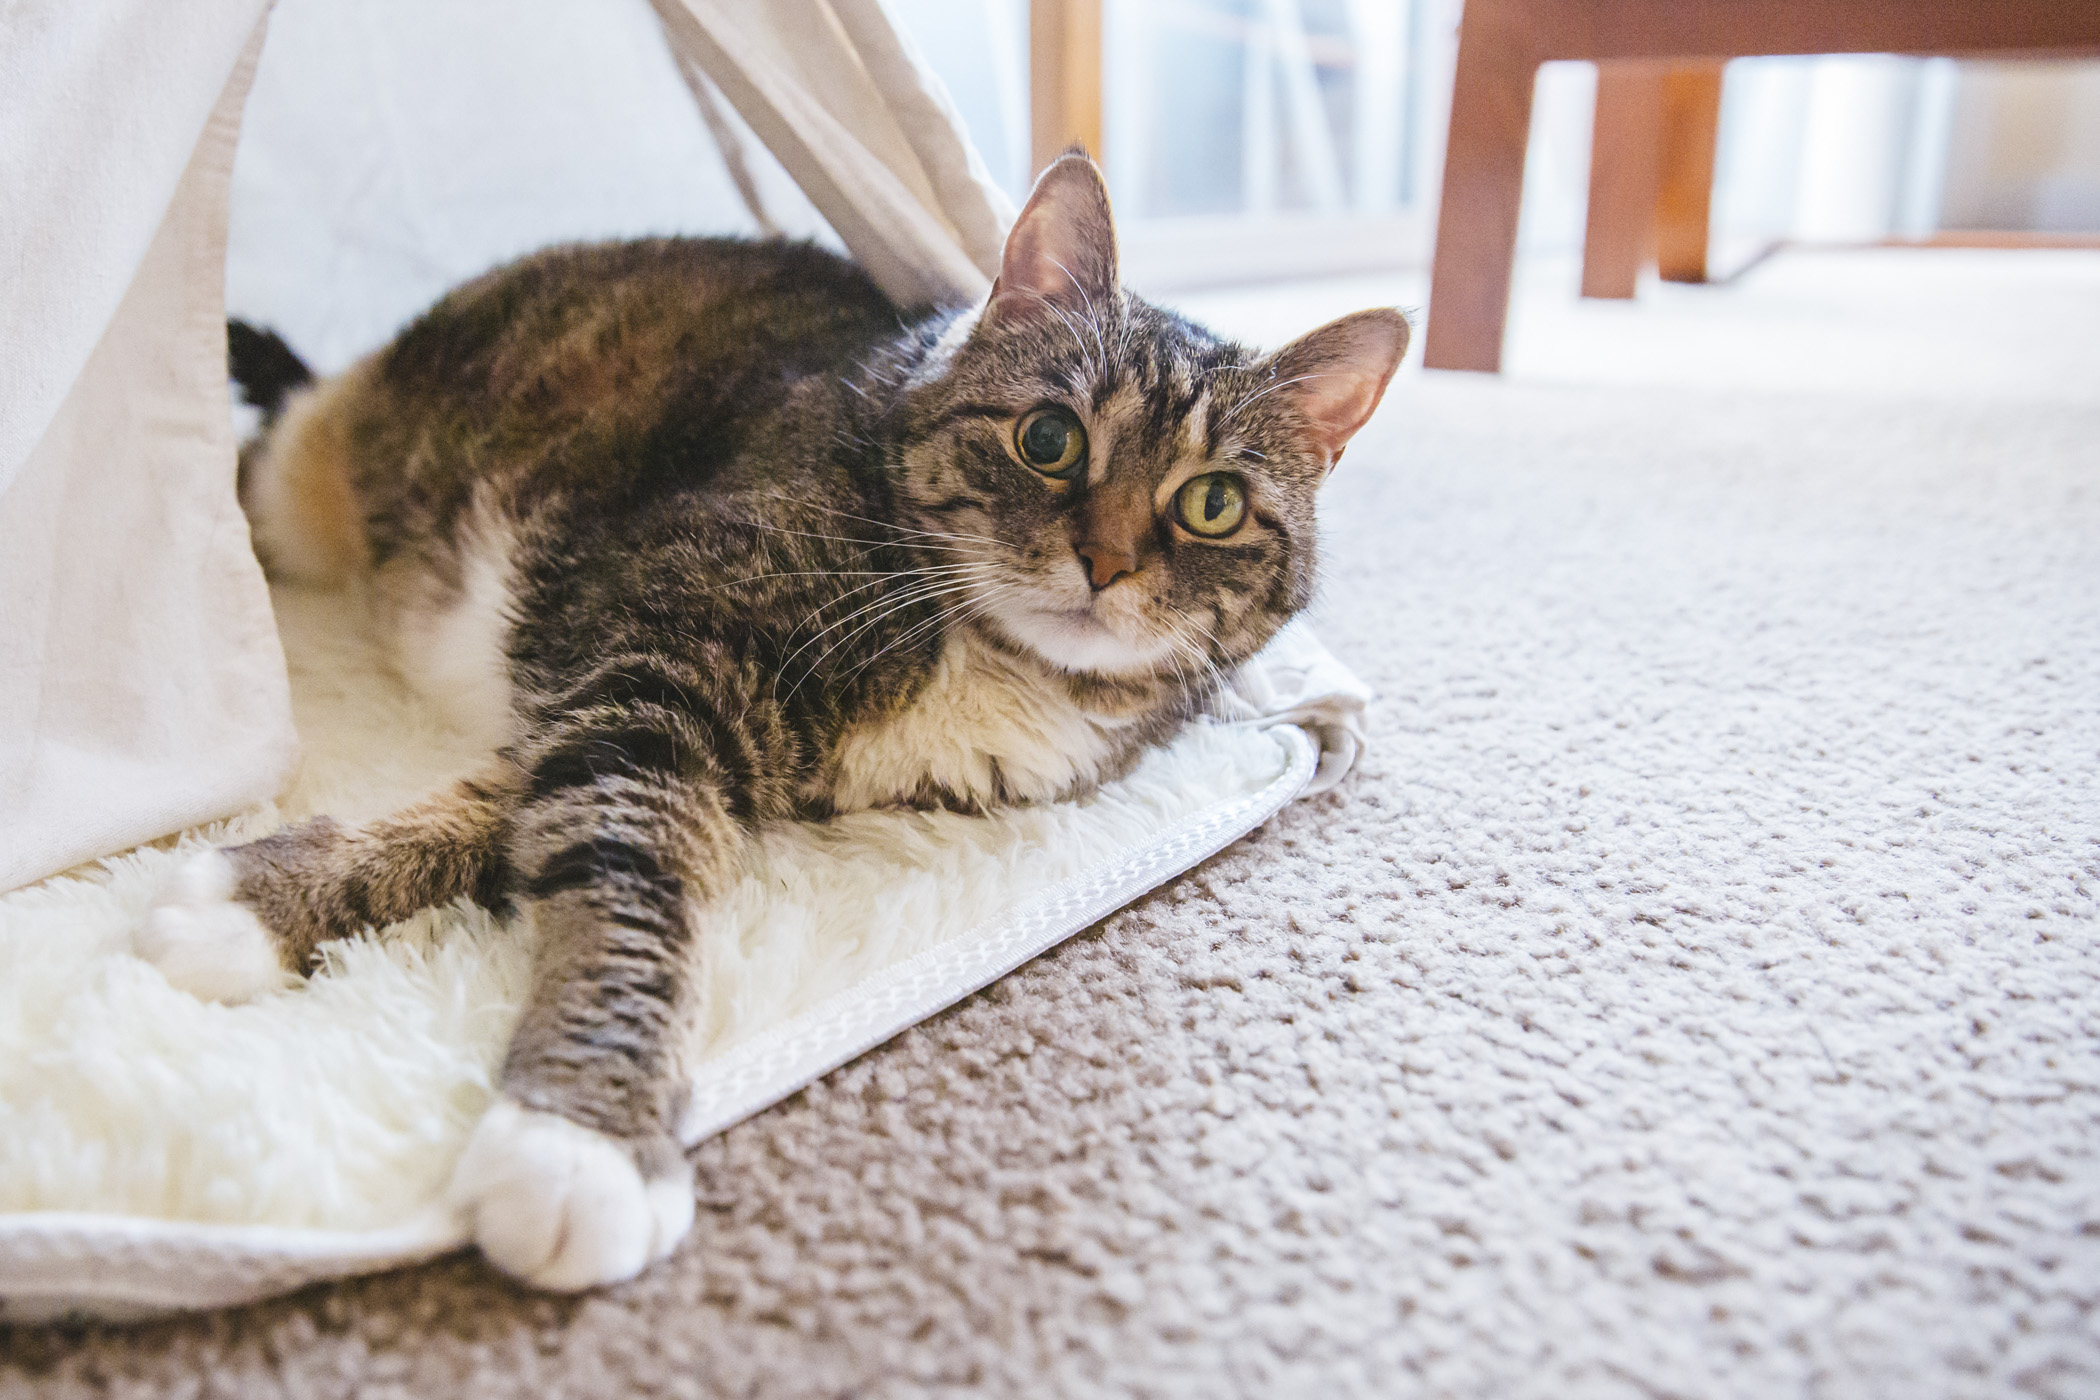 "Zoey is 13-year-old born and raised PNW girl who loves hanging on the patio and enjoying the sun! She is living her best life kneading biscuits while aggressively purring making uninterrupted eye contact at all times.{&nbsp;}<a  href=""http://seattlerefined.com/ruffined"" target=""_blank"">The Seattle RUFFined Spotlight</a>{&nbsp;}is a weekly profile of local pets living and loving life in the PNW. If you or someone you know has a pet you'd like featured, email us at{&nbsp;}{&nbsp;}and your furbaby could be the next spotlighted! (Image: Sunita Martini / Seattle Refined)"